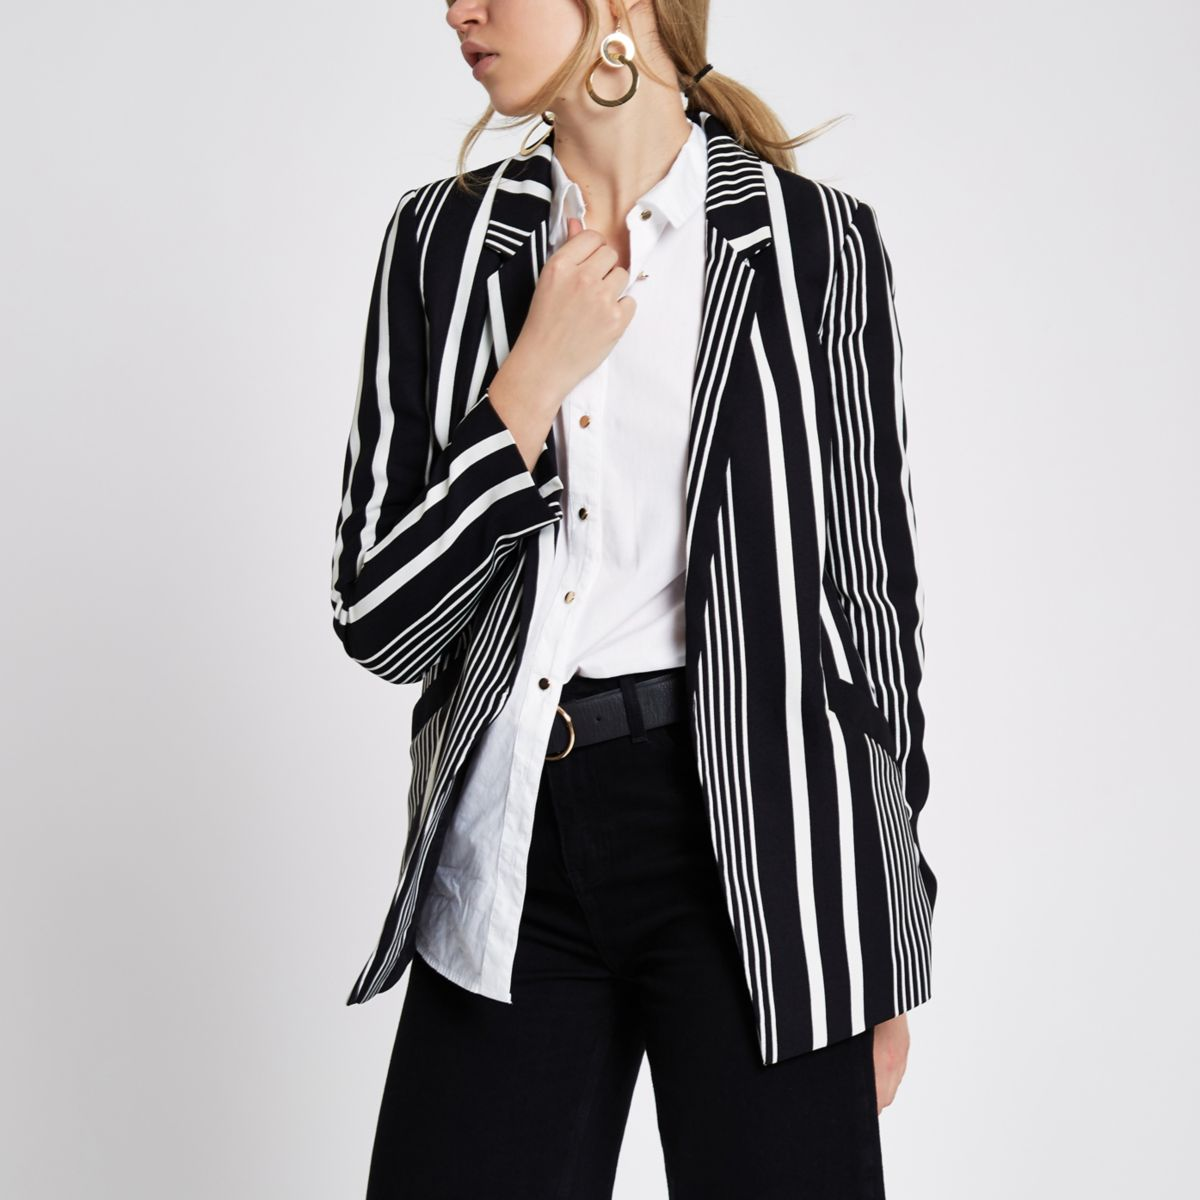 Monochrome striped blazer